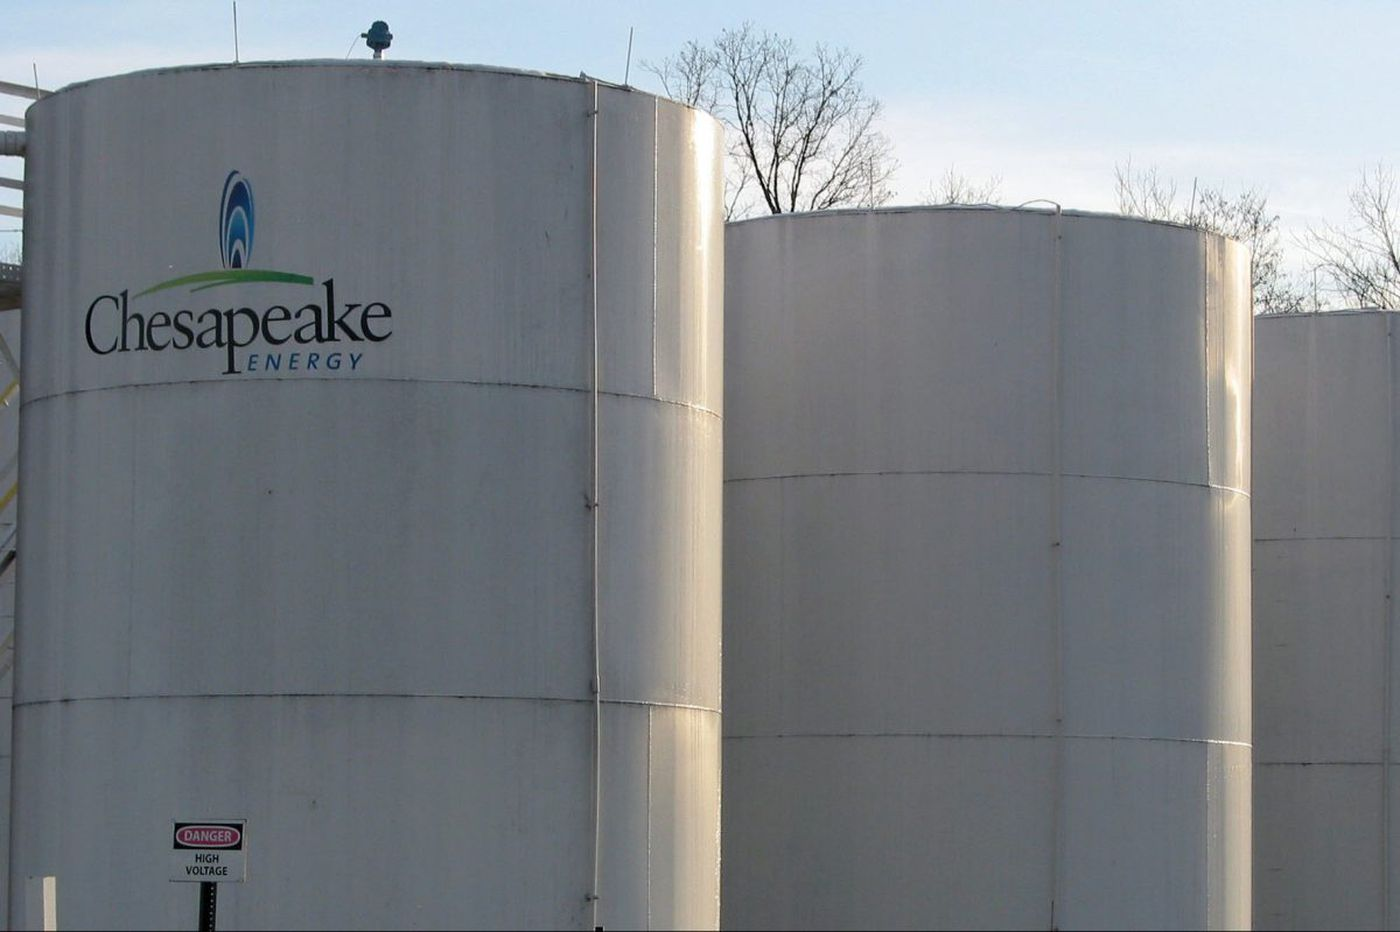 AG Josh Shapiro clashes with Chesapeake Energy over gas royalty payments to landowners